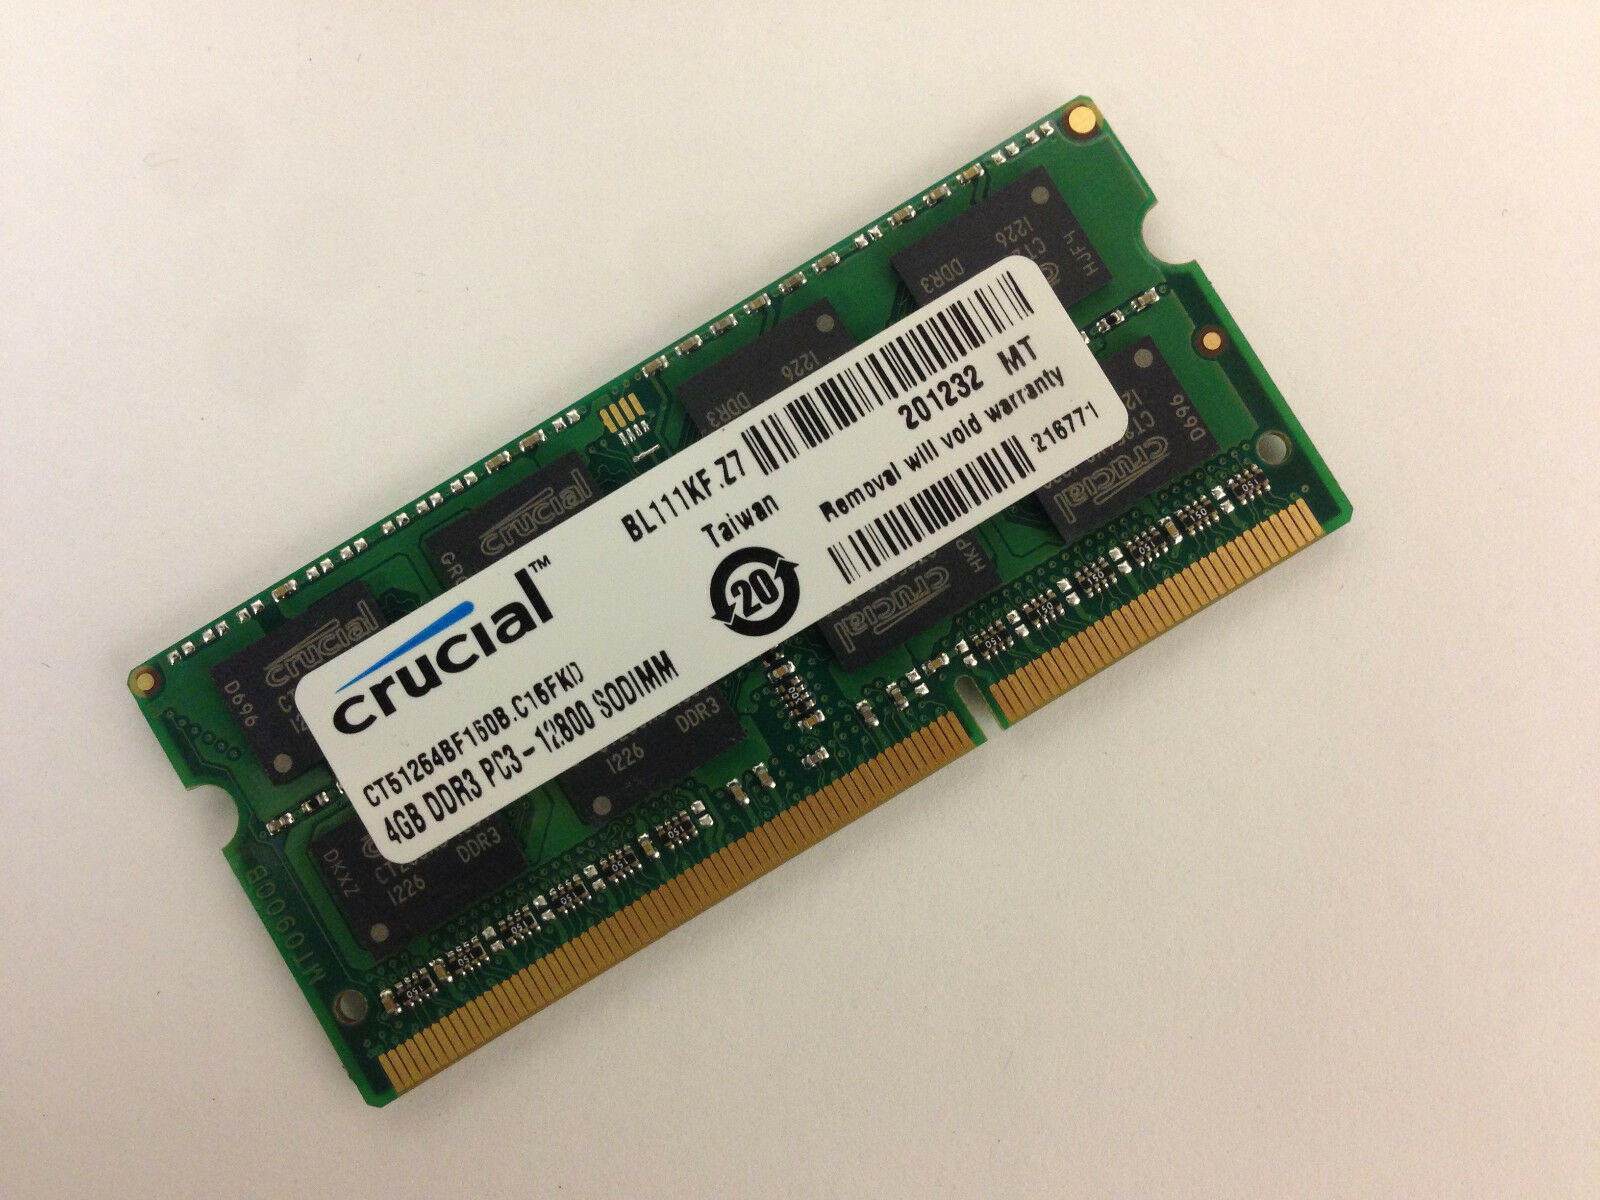 Crucial 4GB DDR3 1600 MHz PC3 1 35V Laptop RAM Sodimm Memory DDR3L 1600 1 of 1FREE Shipping See More